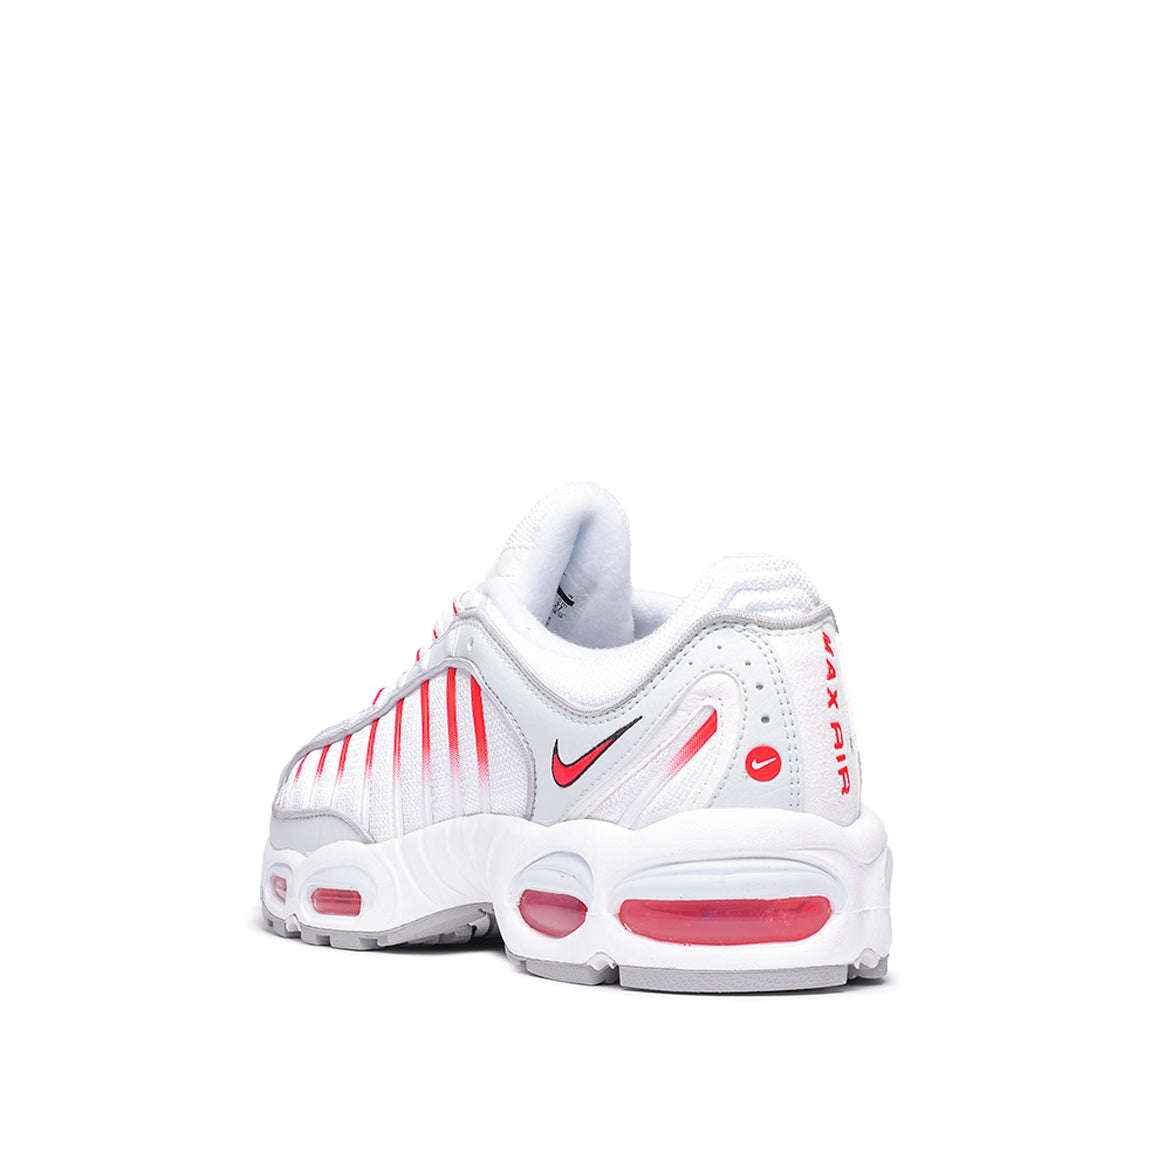 "AIR MAX TAILWIND IV ""RED ORBIT"""